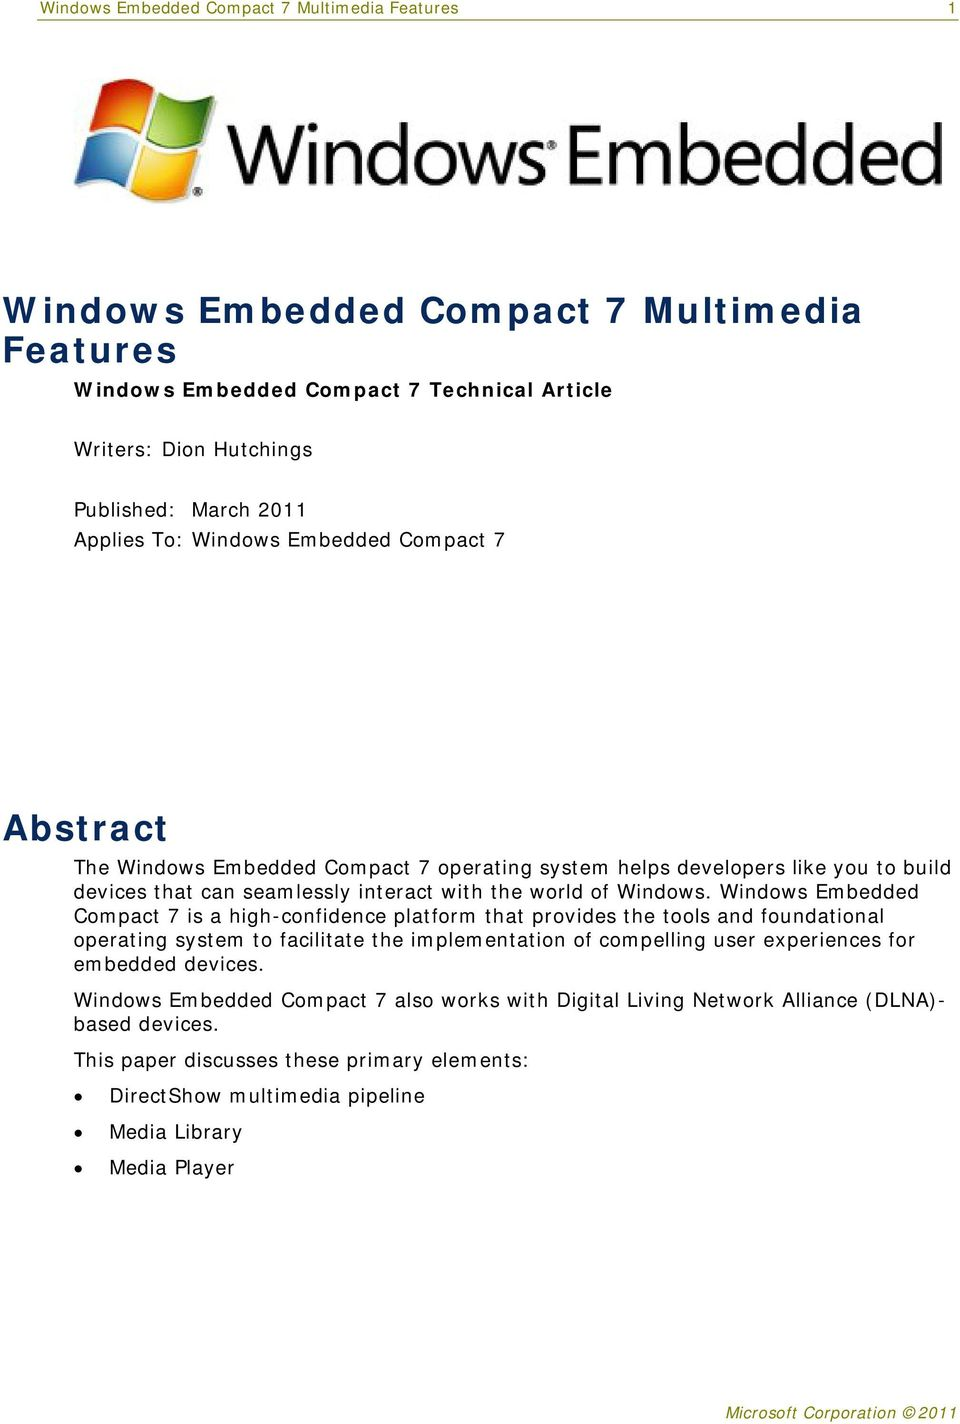 Windows Embedded Compact 7 is a high-confidence platform that provides the tools and foundational operating system to facilitate the implementation of compelling user experiences for embedded